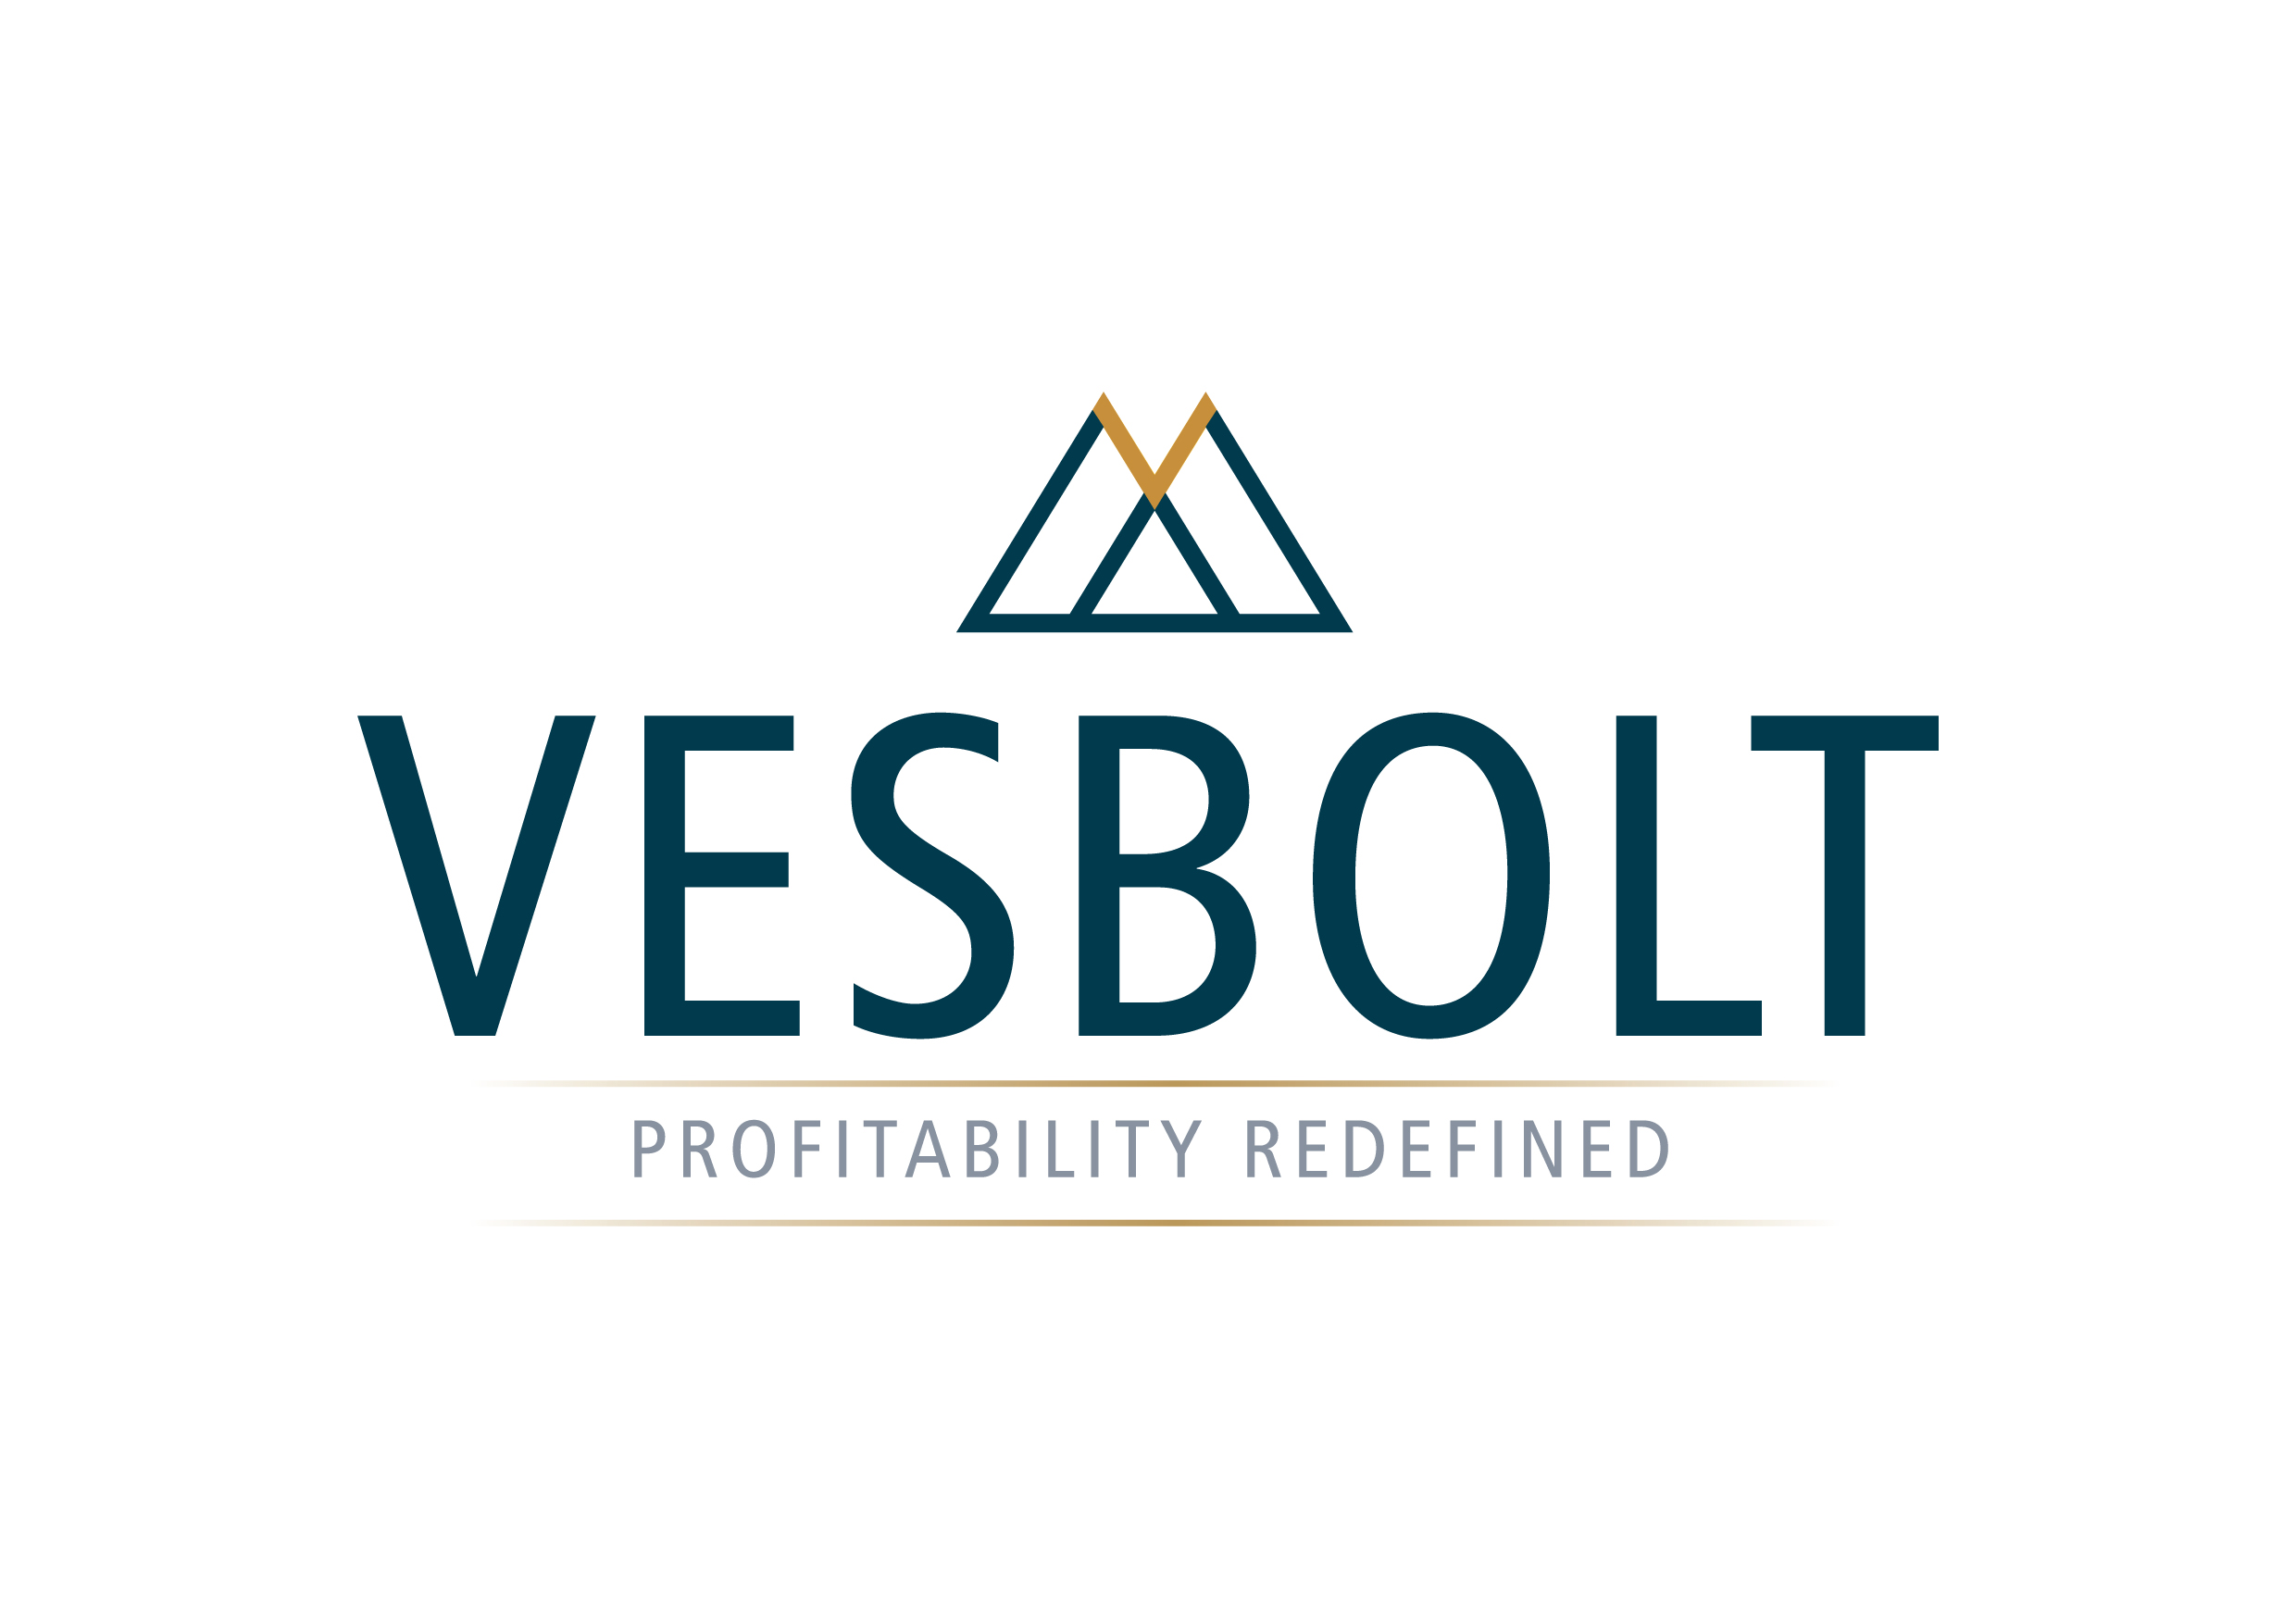 Asset and Portfolio Management Service VESBOLT Carves a Unique Identity with Focus on Profits and Growth